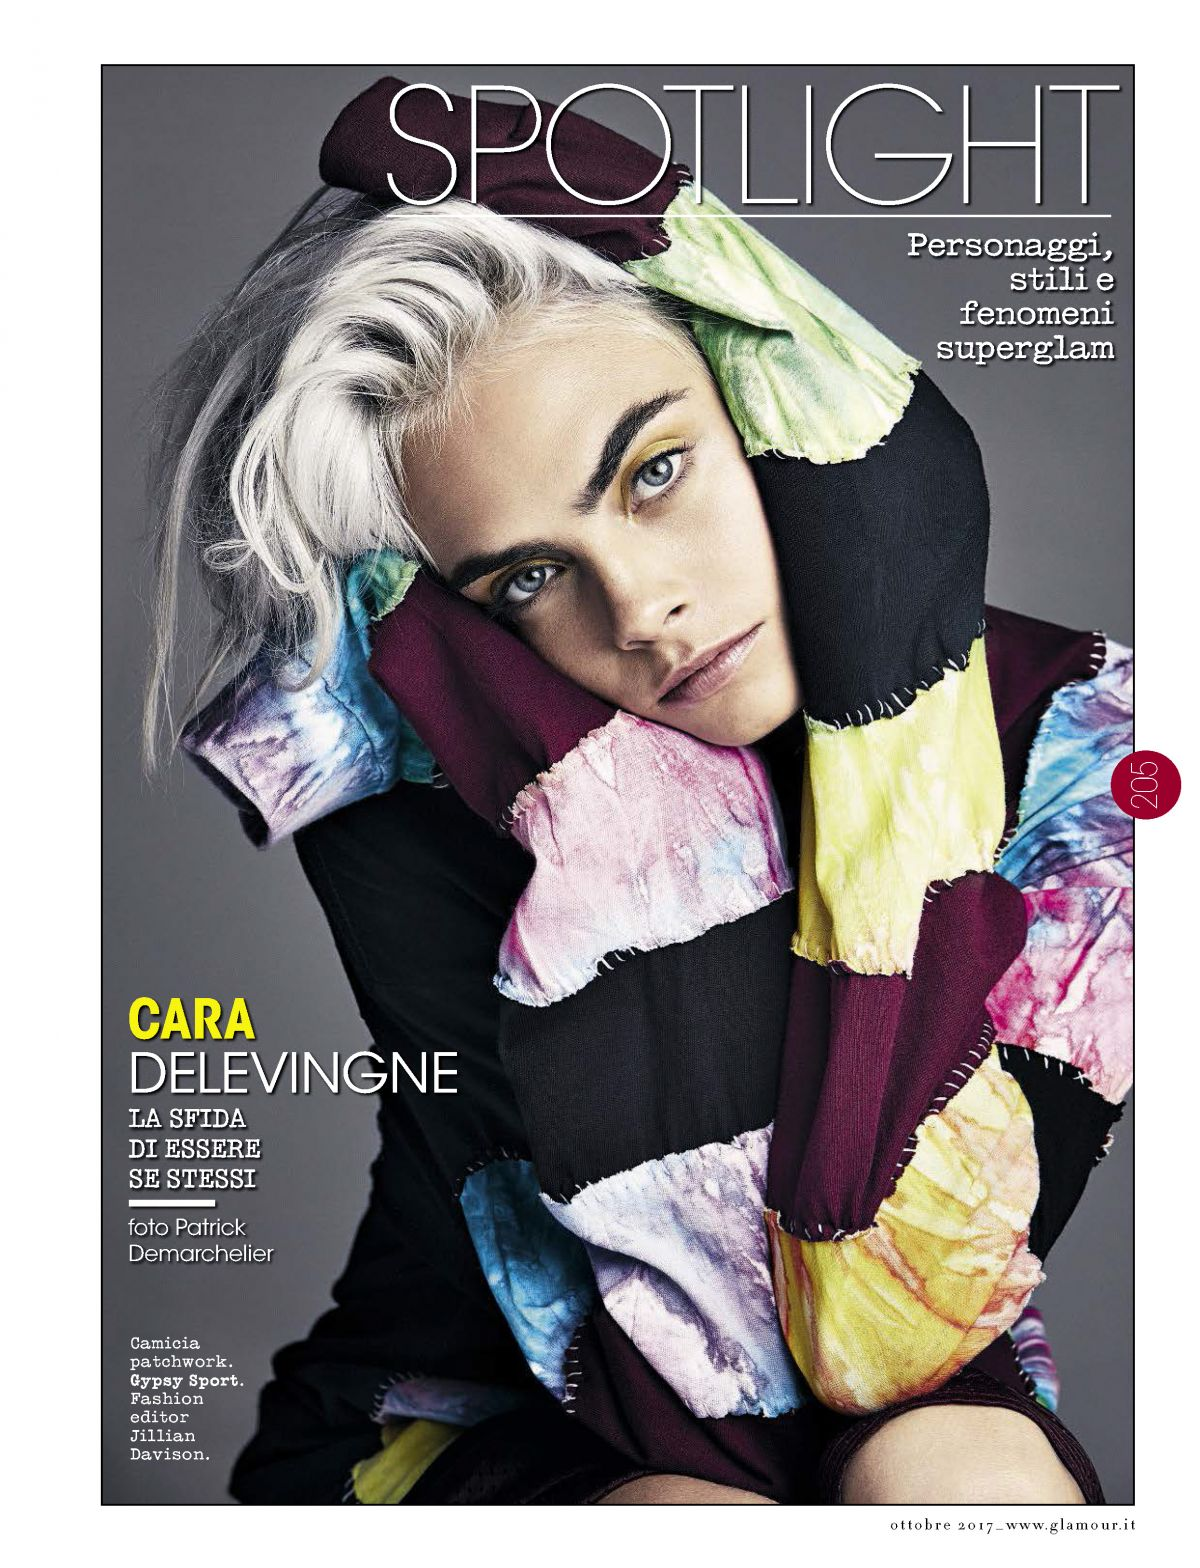 CARA DELEVINGNE in Glamour Magazine, Italy Cctober 2017 Issue